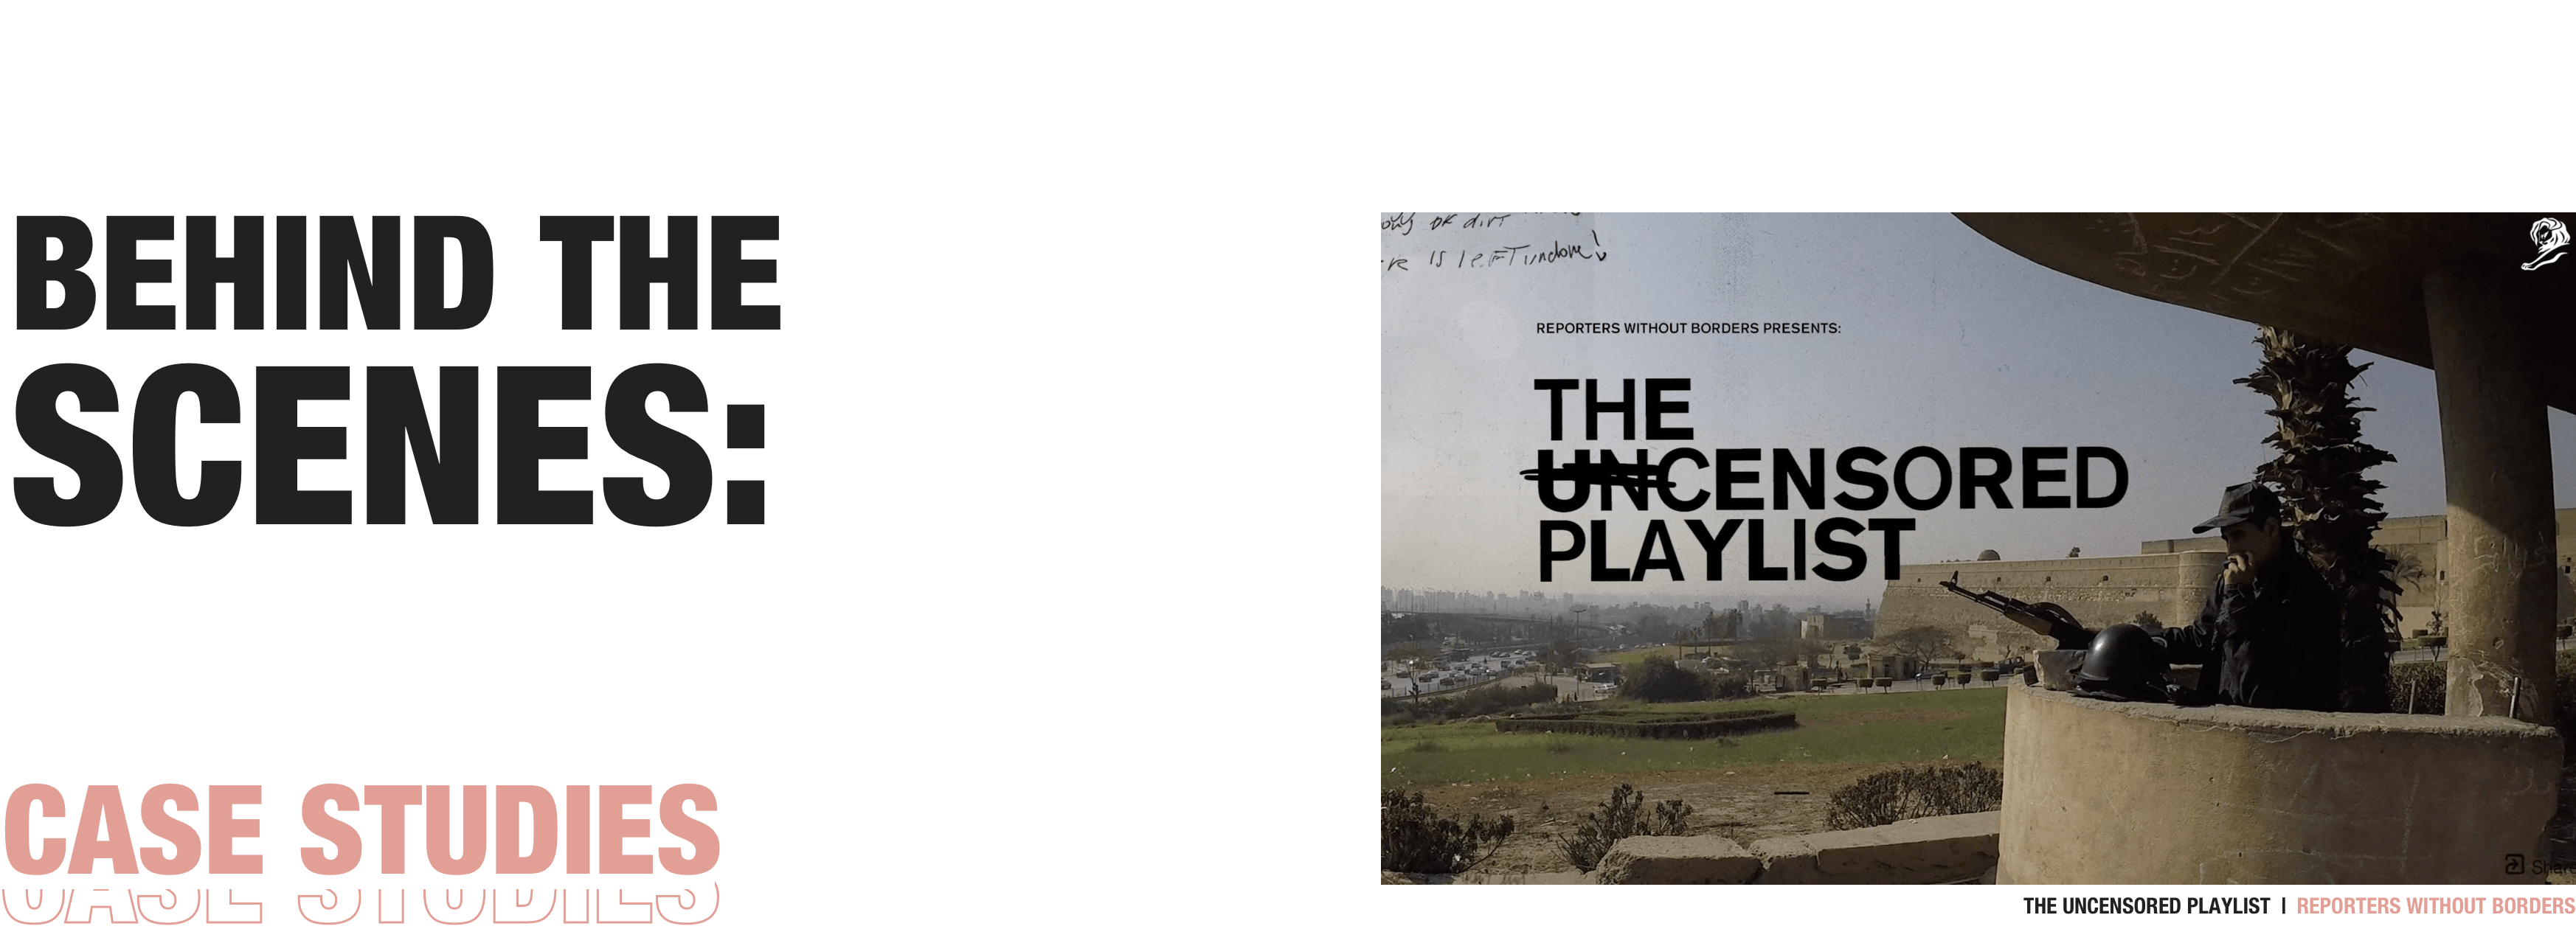 Case Studies - The uncensored playlist (1)-min